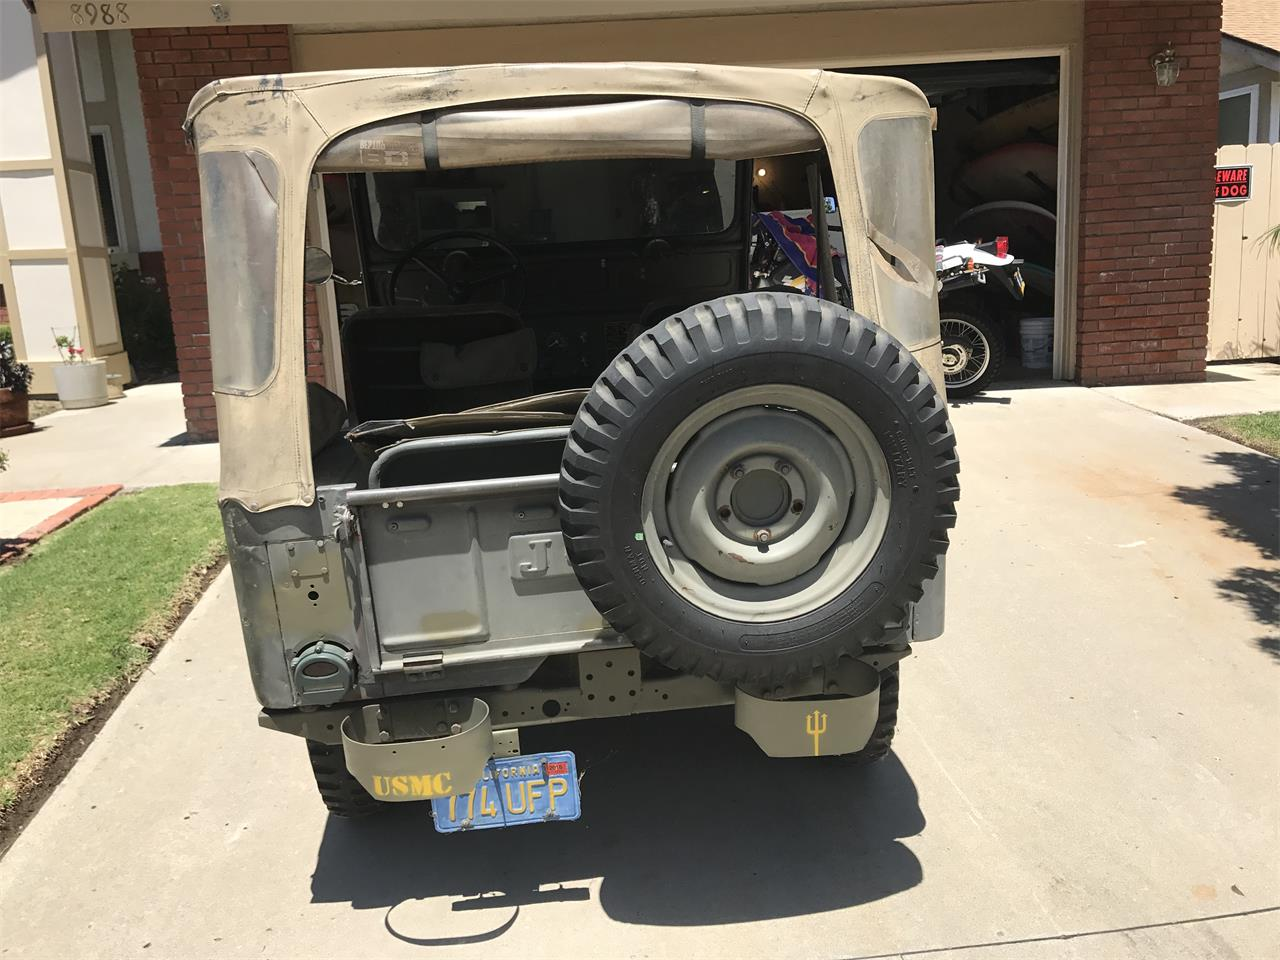 San Diego Jeep Dealers >> 1952 Willys Military Jeep for Sale | ClassicCars.com | CC ...